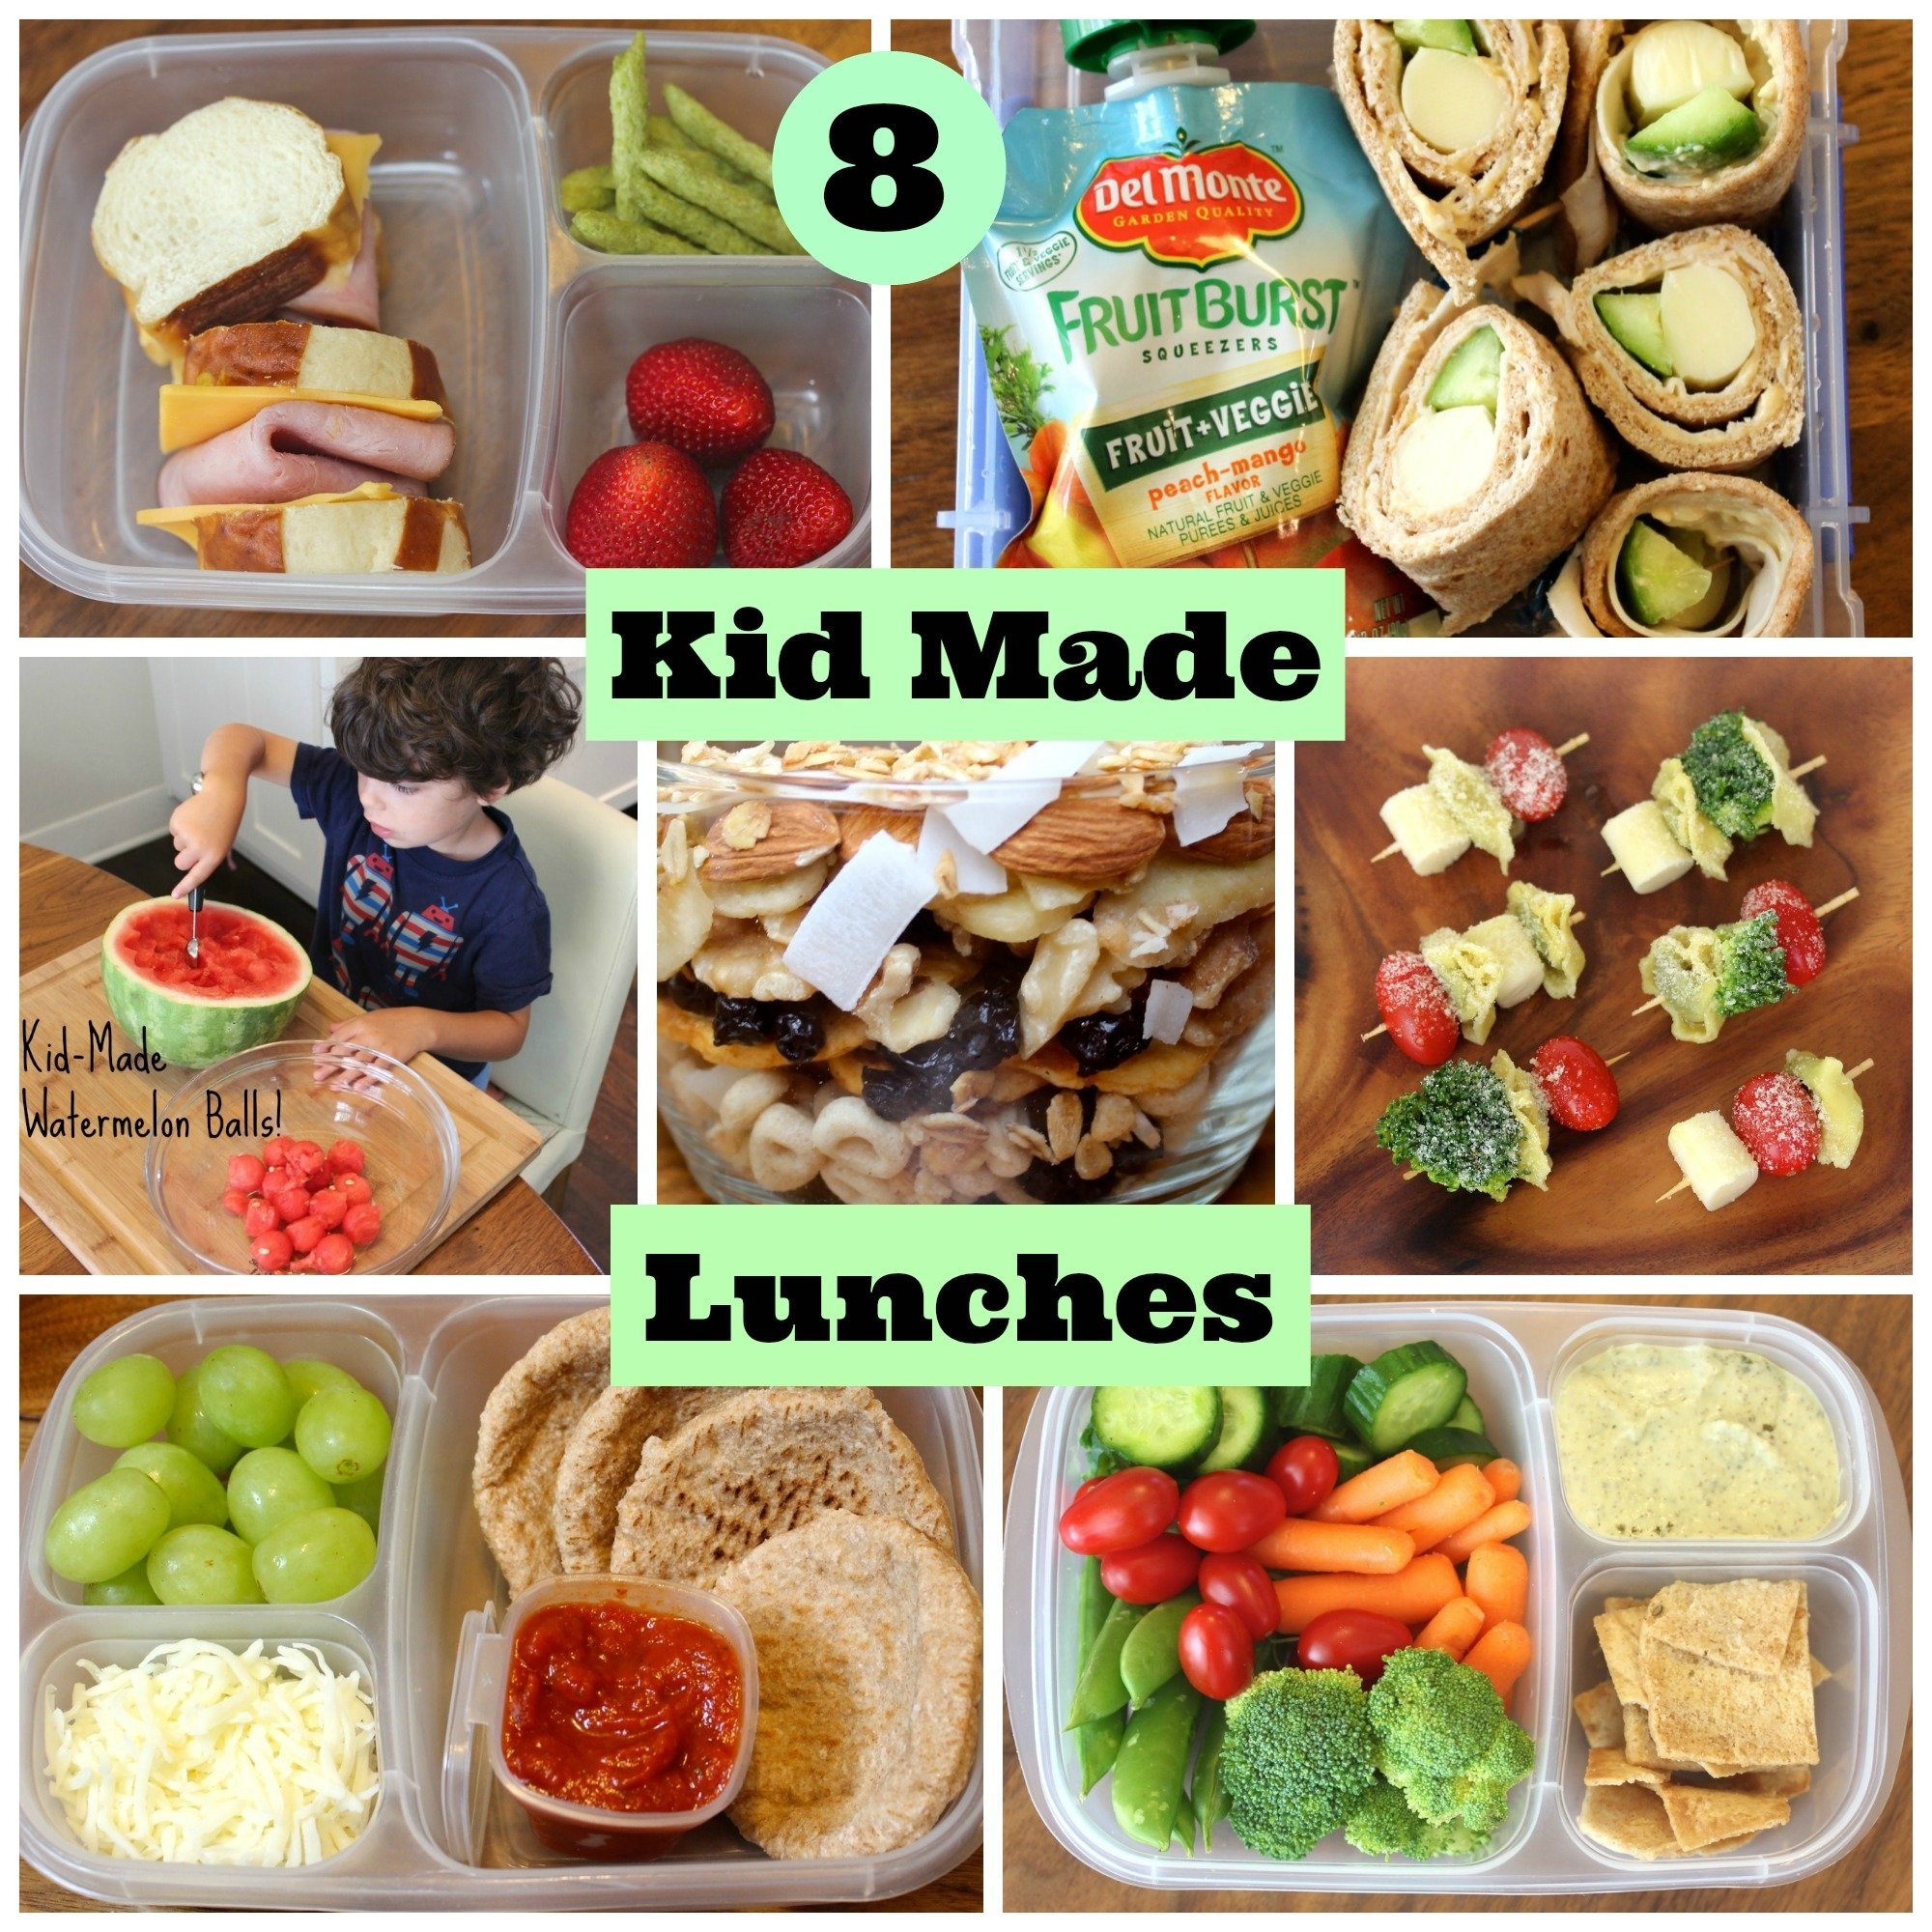 4 healthy school lunches your kids can make themselves | babble